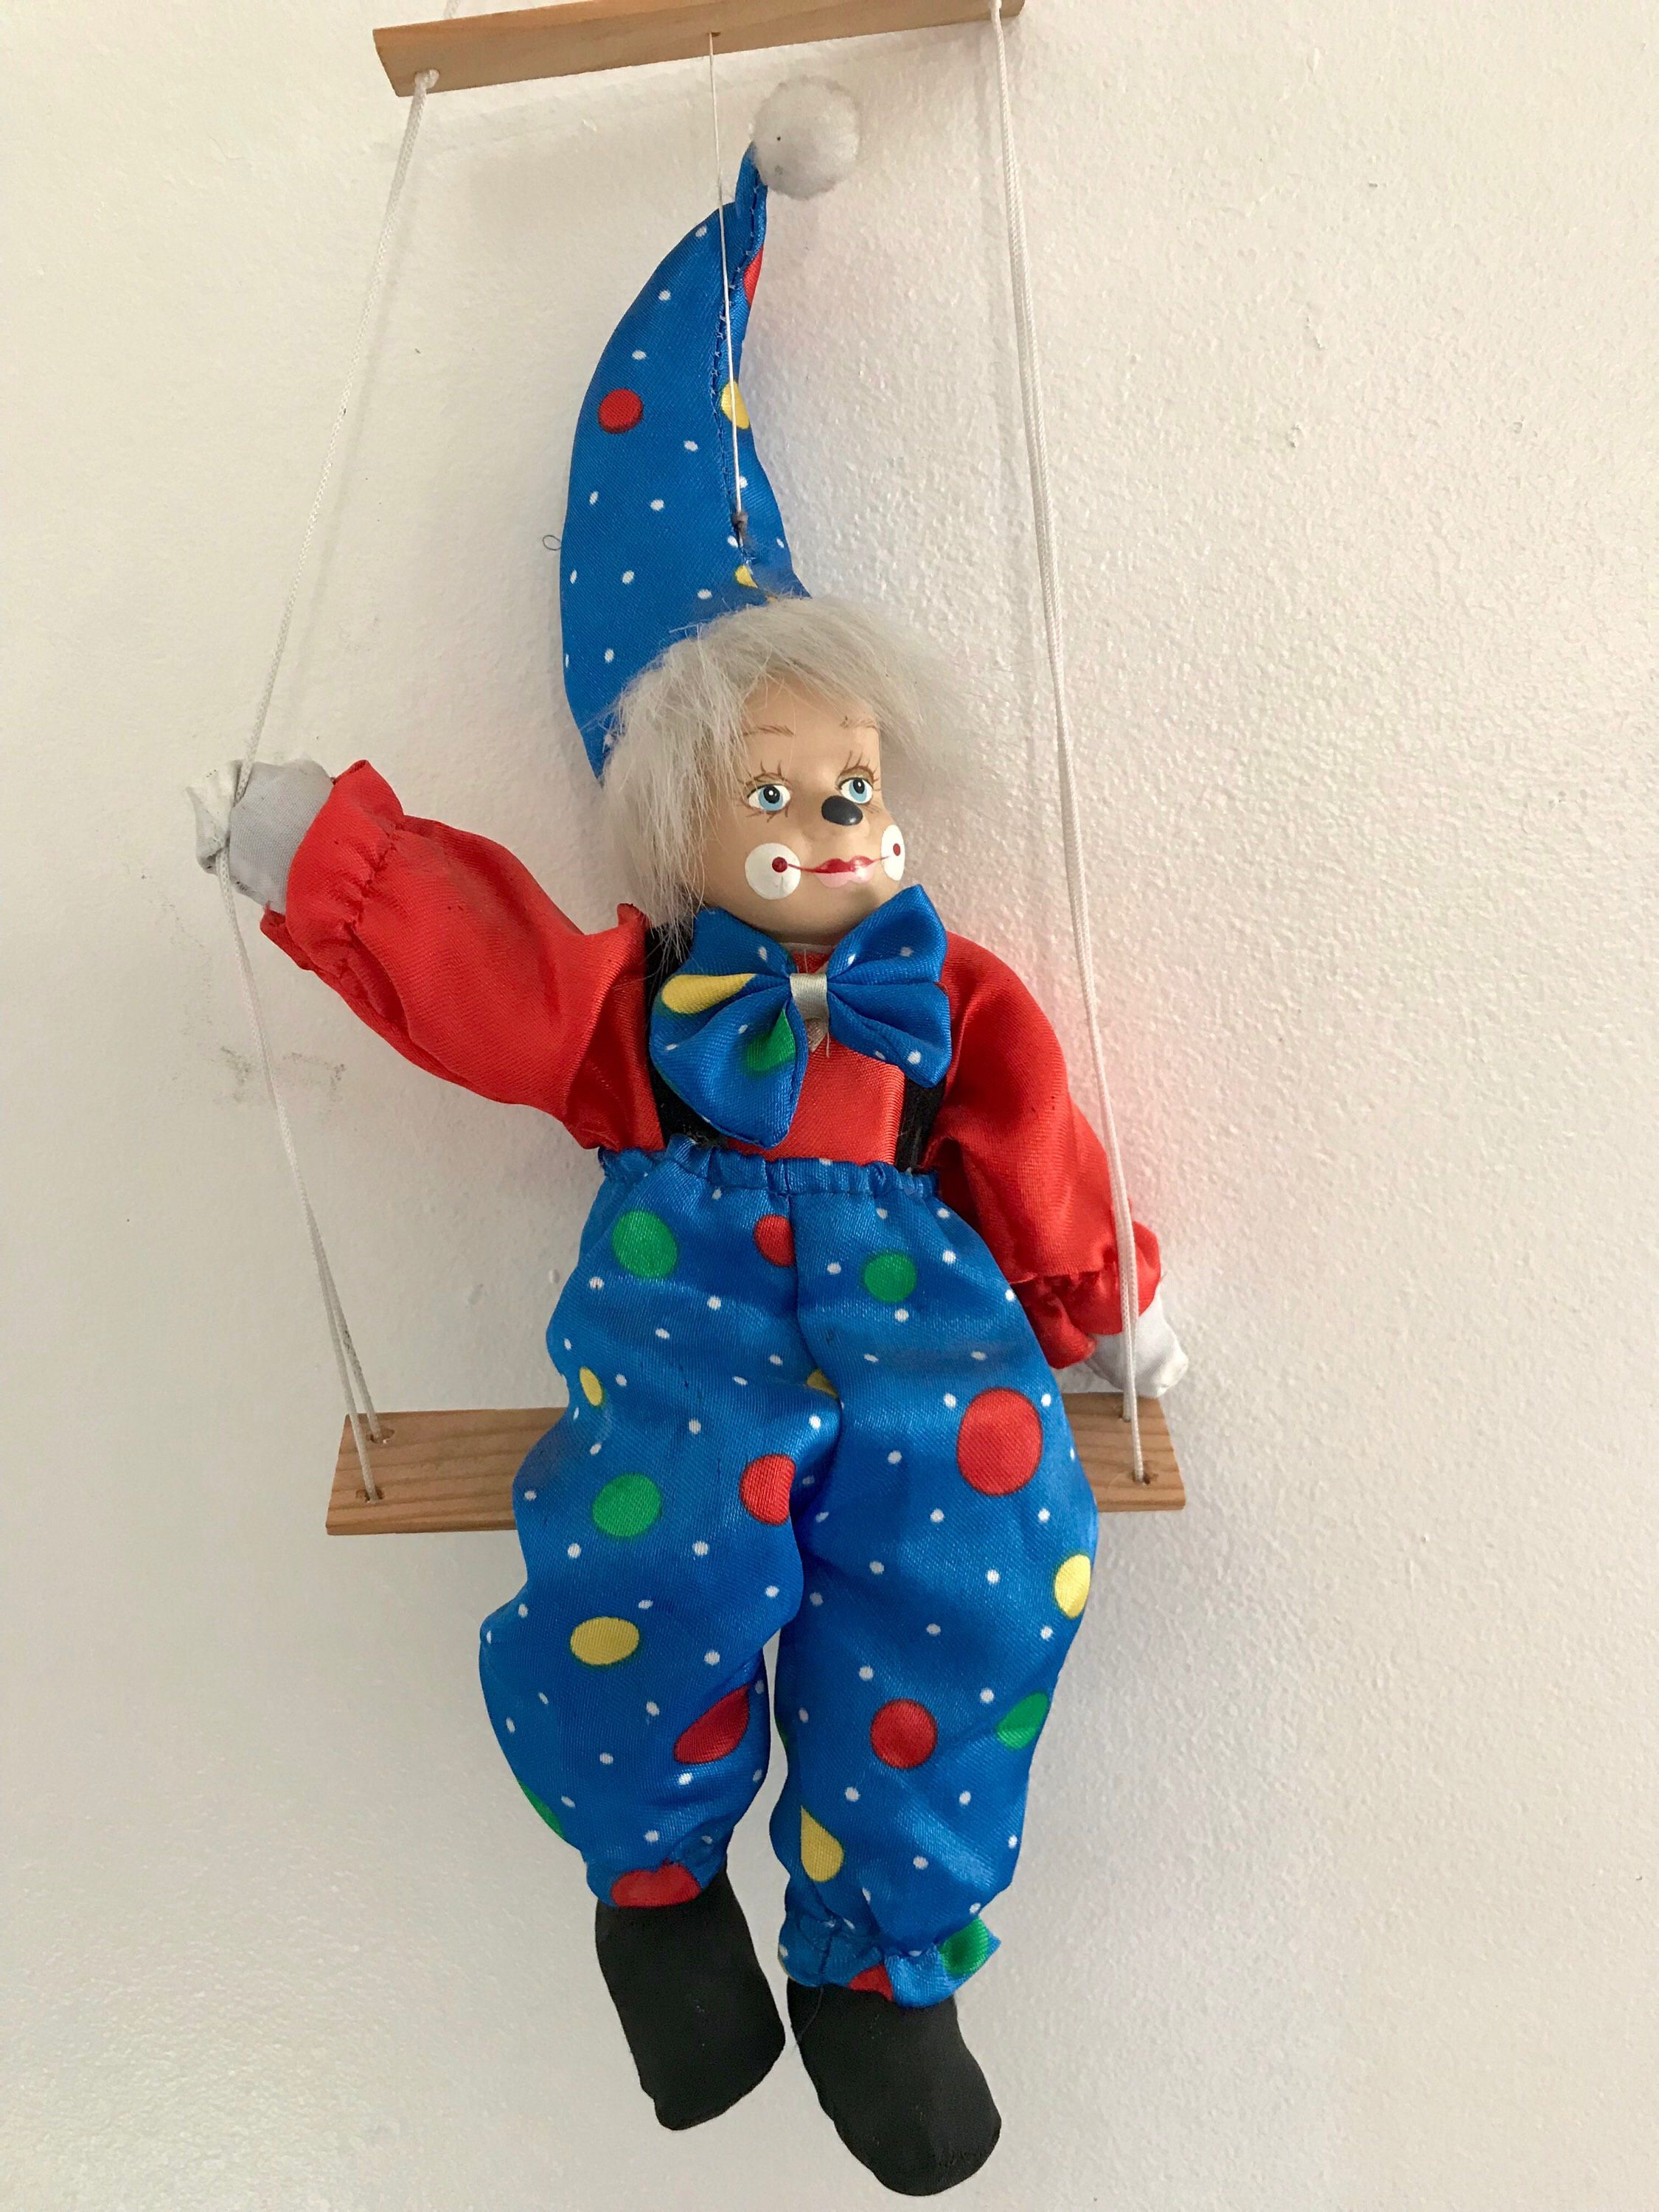 Clown sitting in swing Vintage Toy doll Marionette Puppet